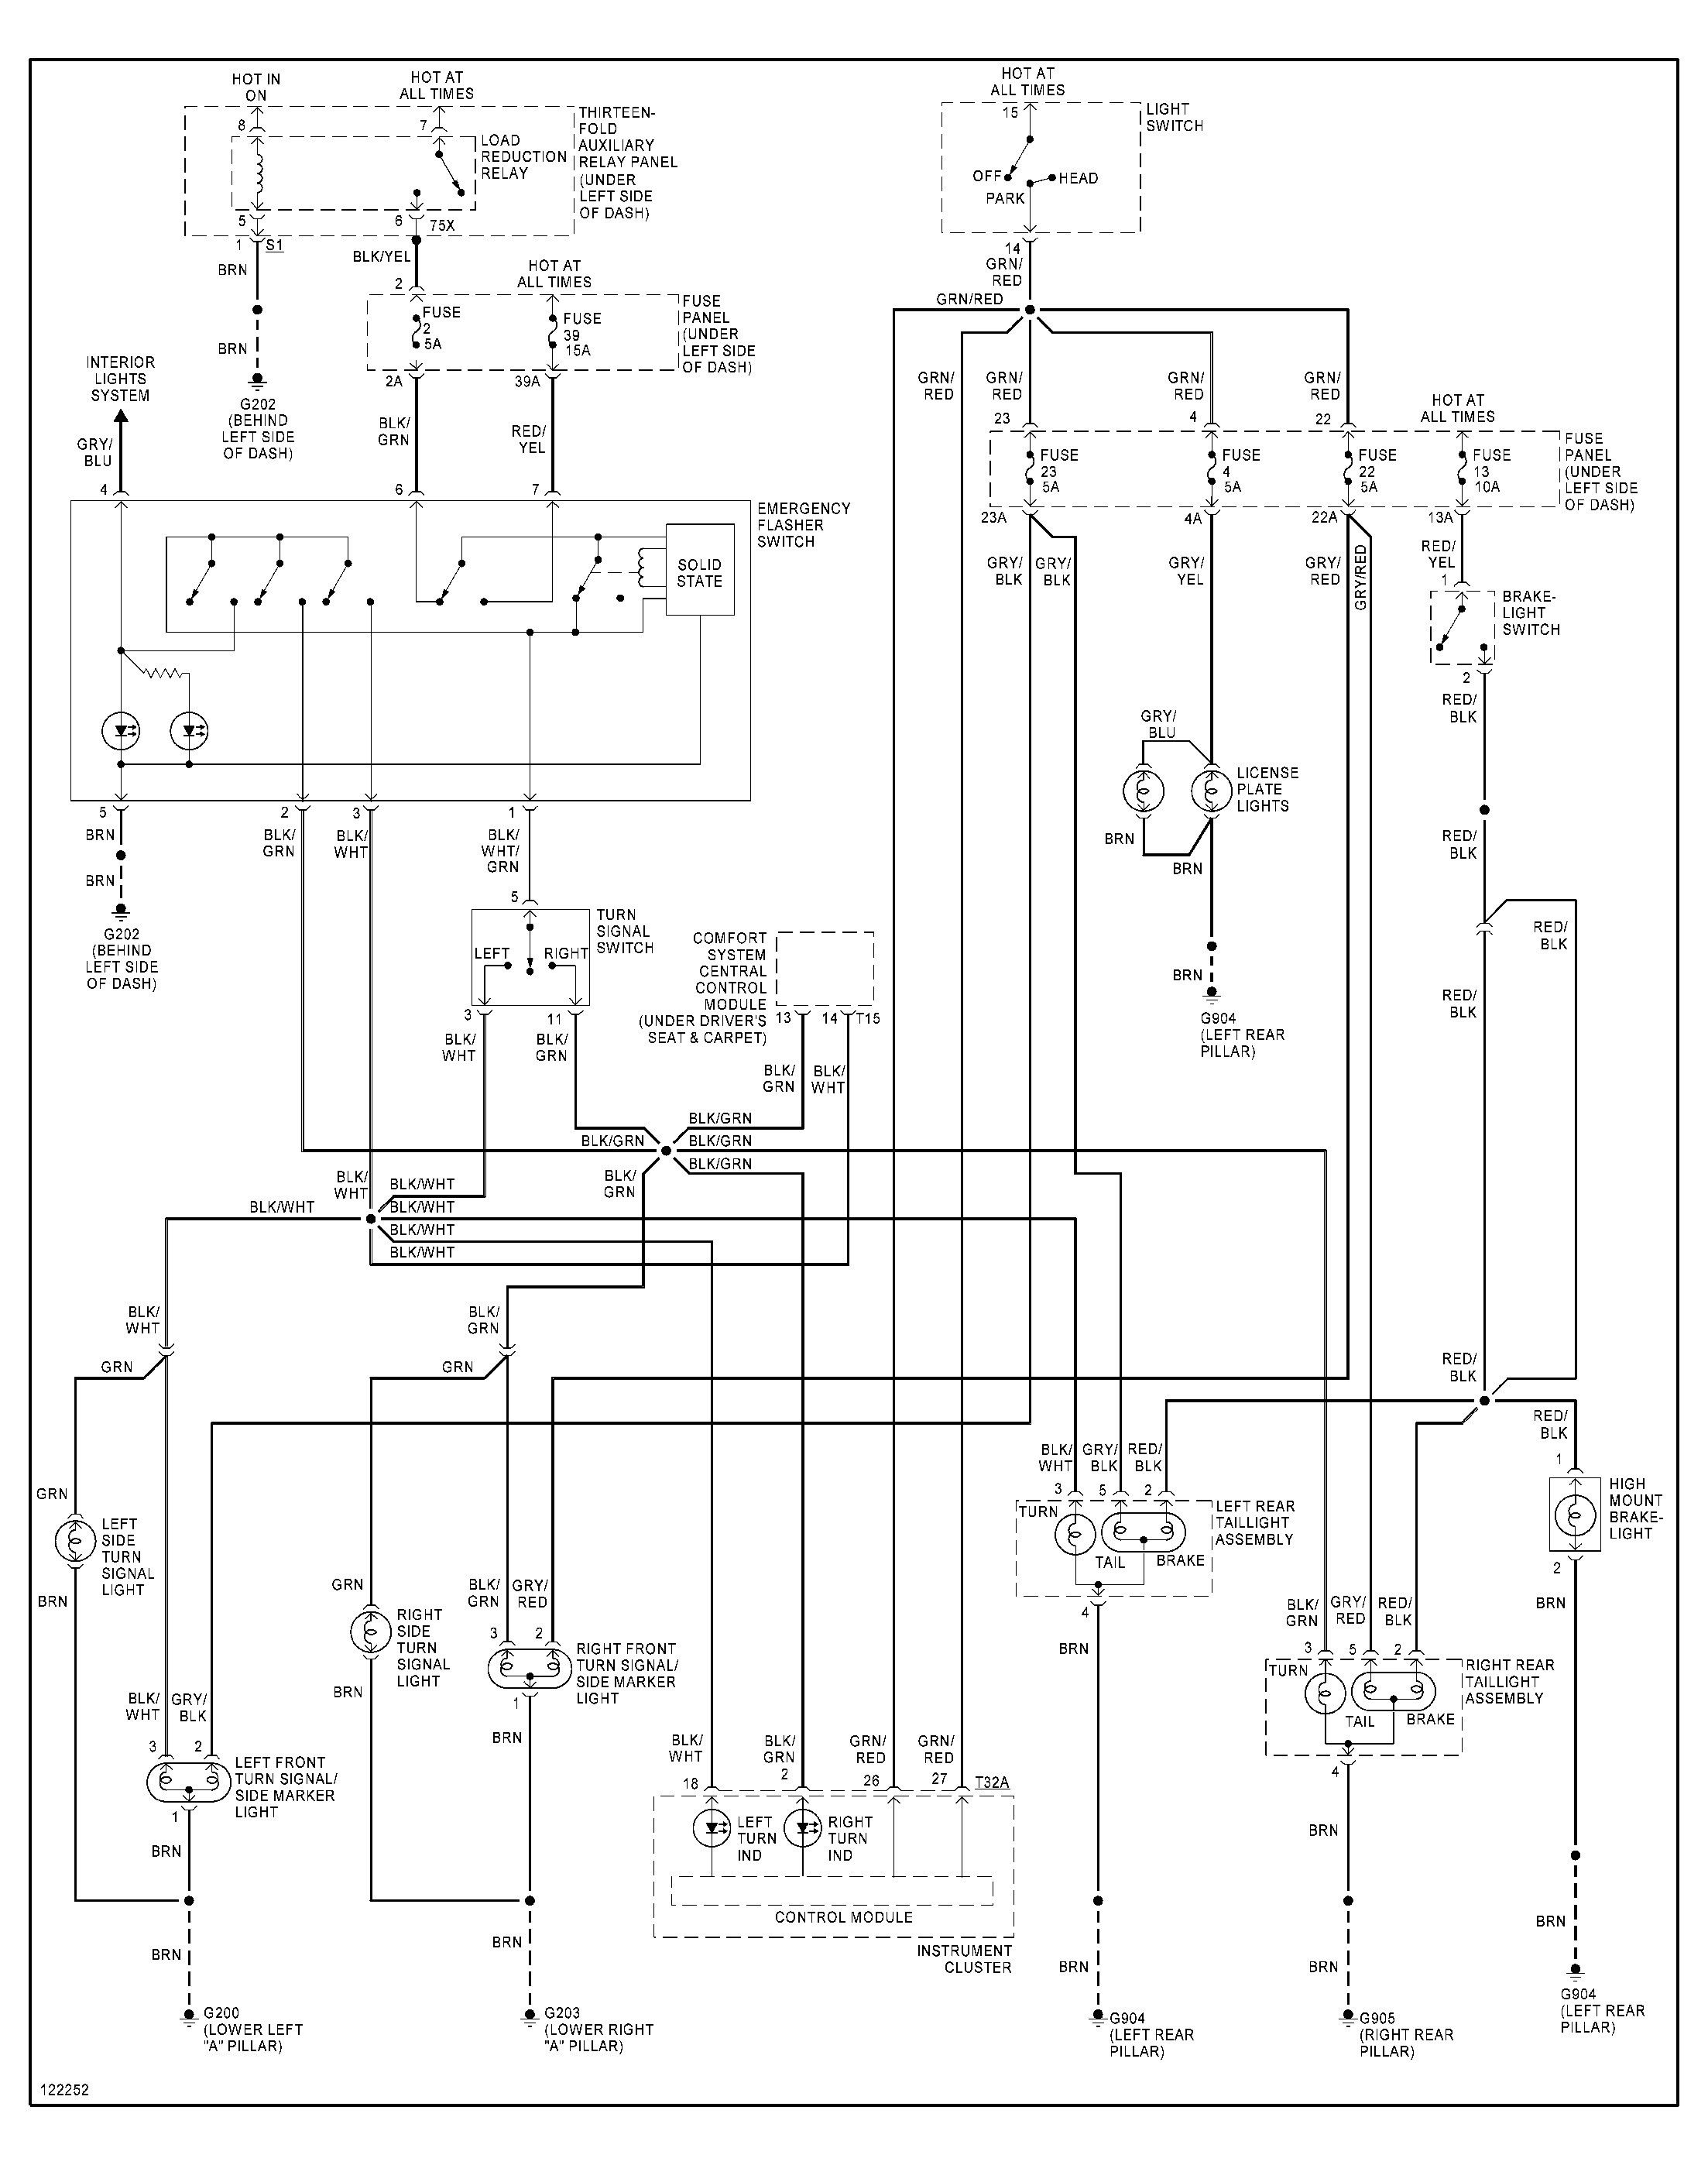 Audi Wiring Diagram - 06 Pt Cruiser Pcm Wiring Diagram Tcm for Wiring  Diagram SchematicsWiring Diagram Schematics